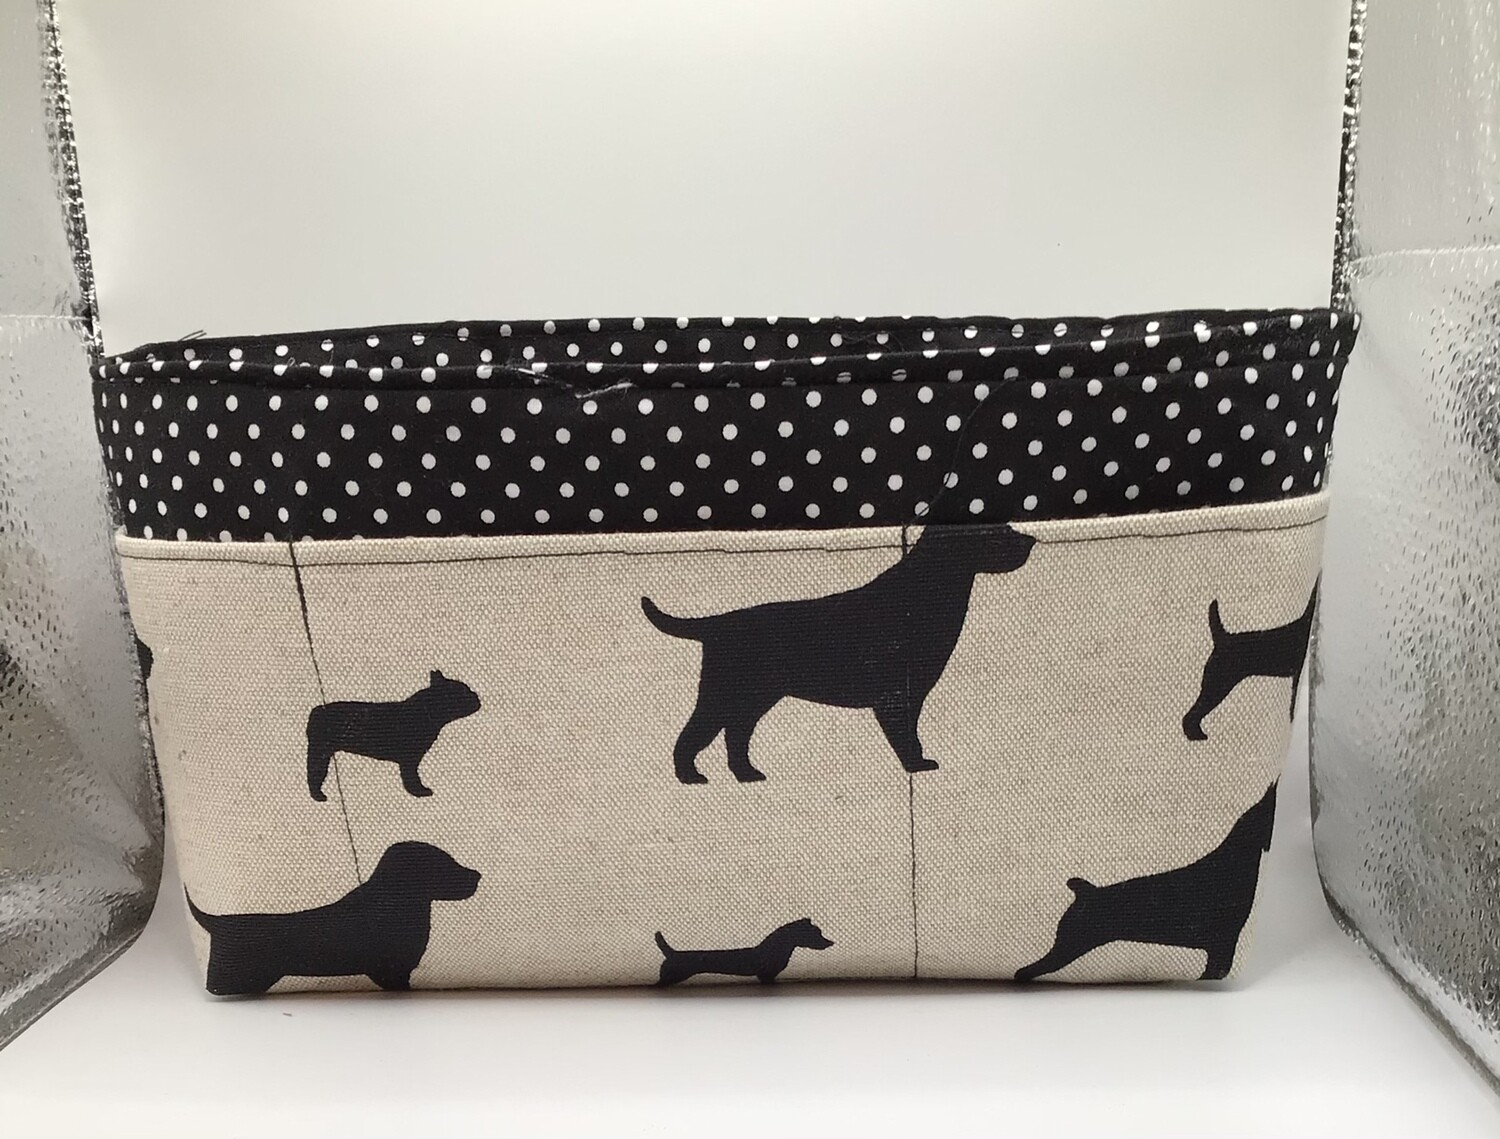 Doggies Large Organizer